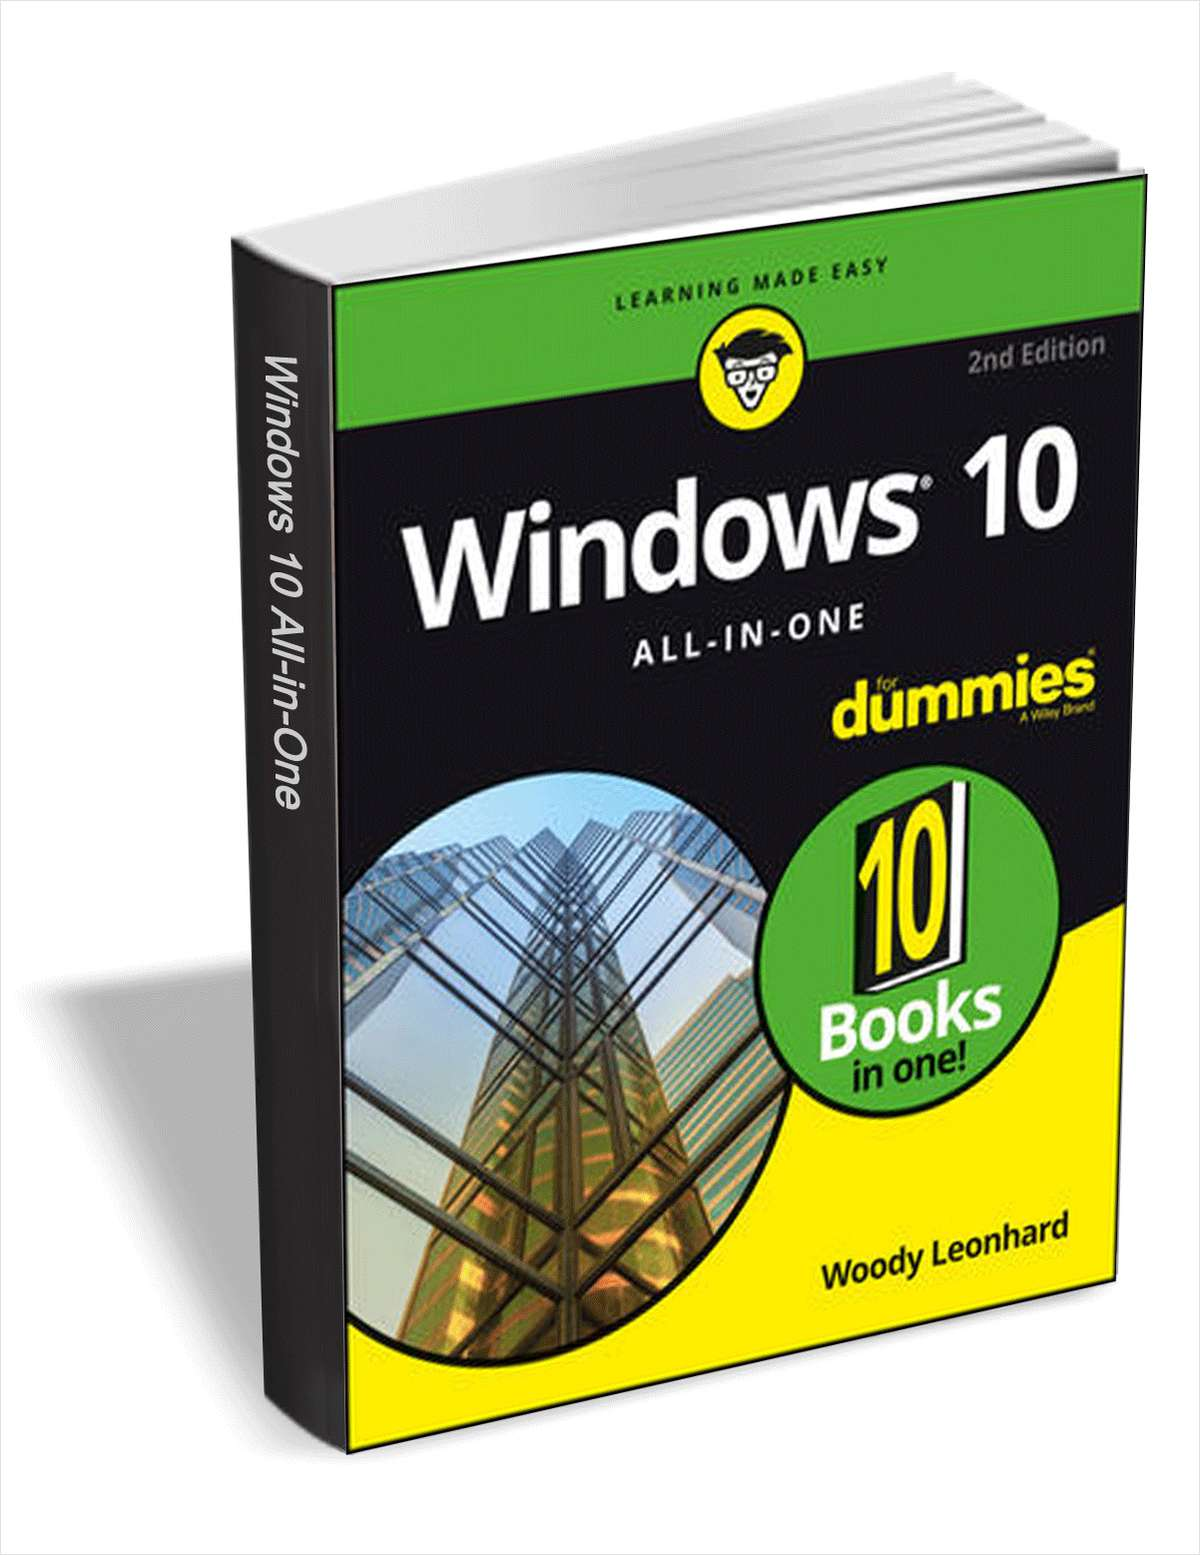 Windows 10 All-In-One For Dummies, 2nd Edition Gratis